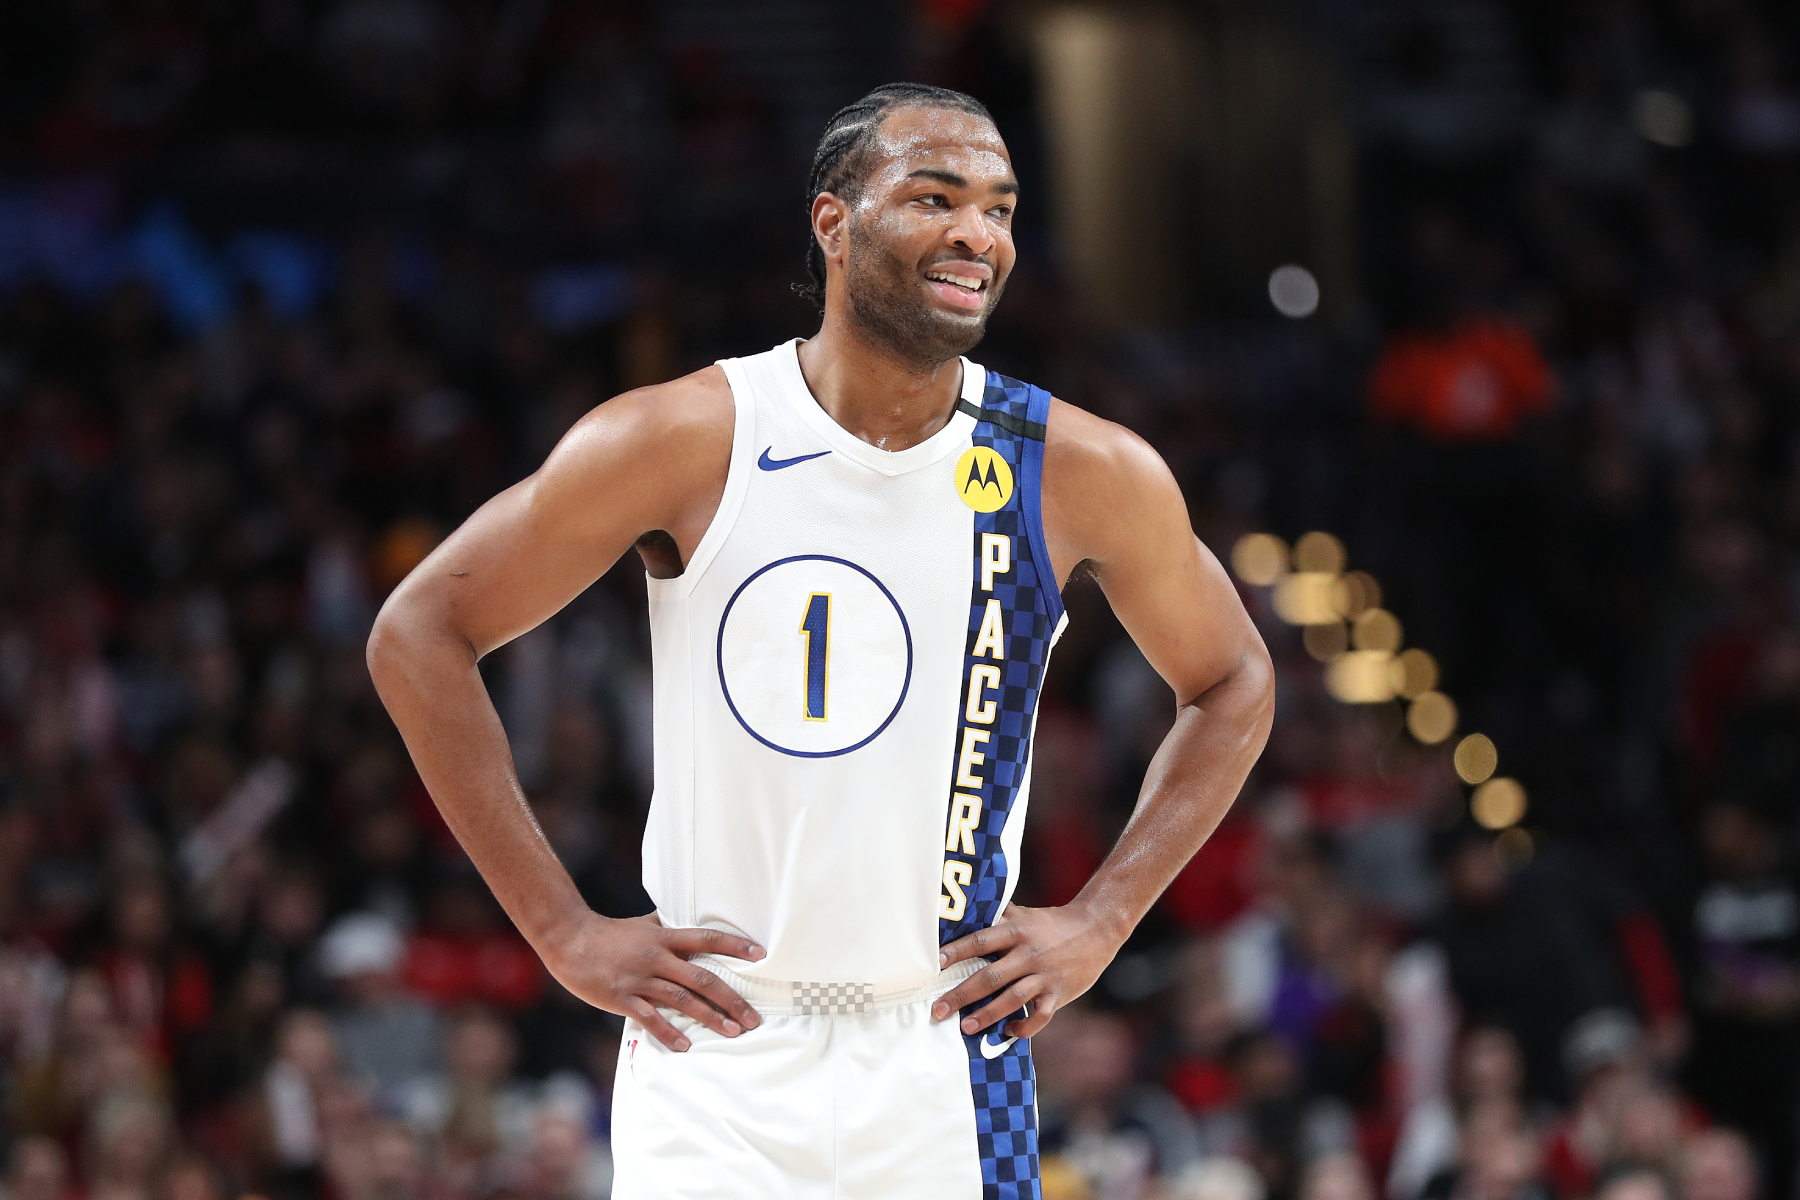 T.J. Warren has been excellent for the Indiana Pacers this season. He is making the Phoenix Suns look extremely foolish for trading him.